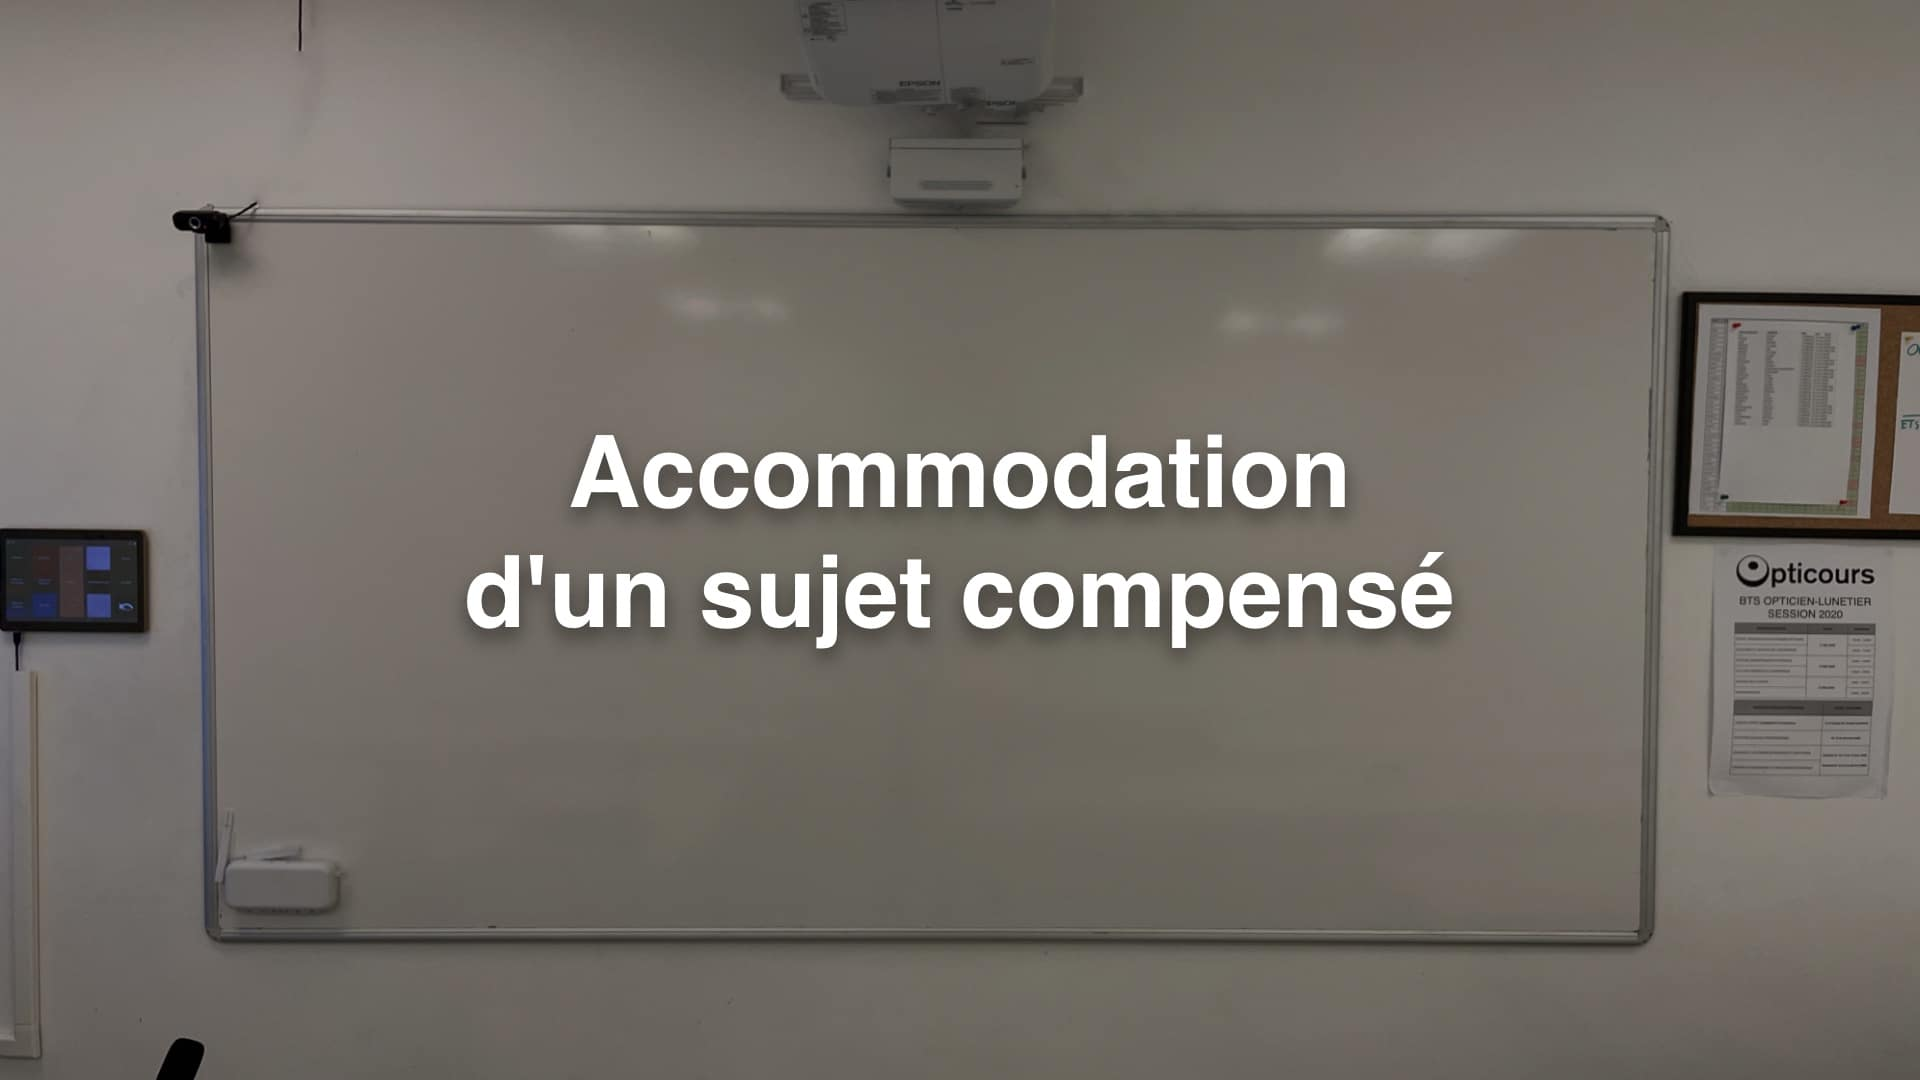 Accommodation d'un sujet compensé